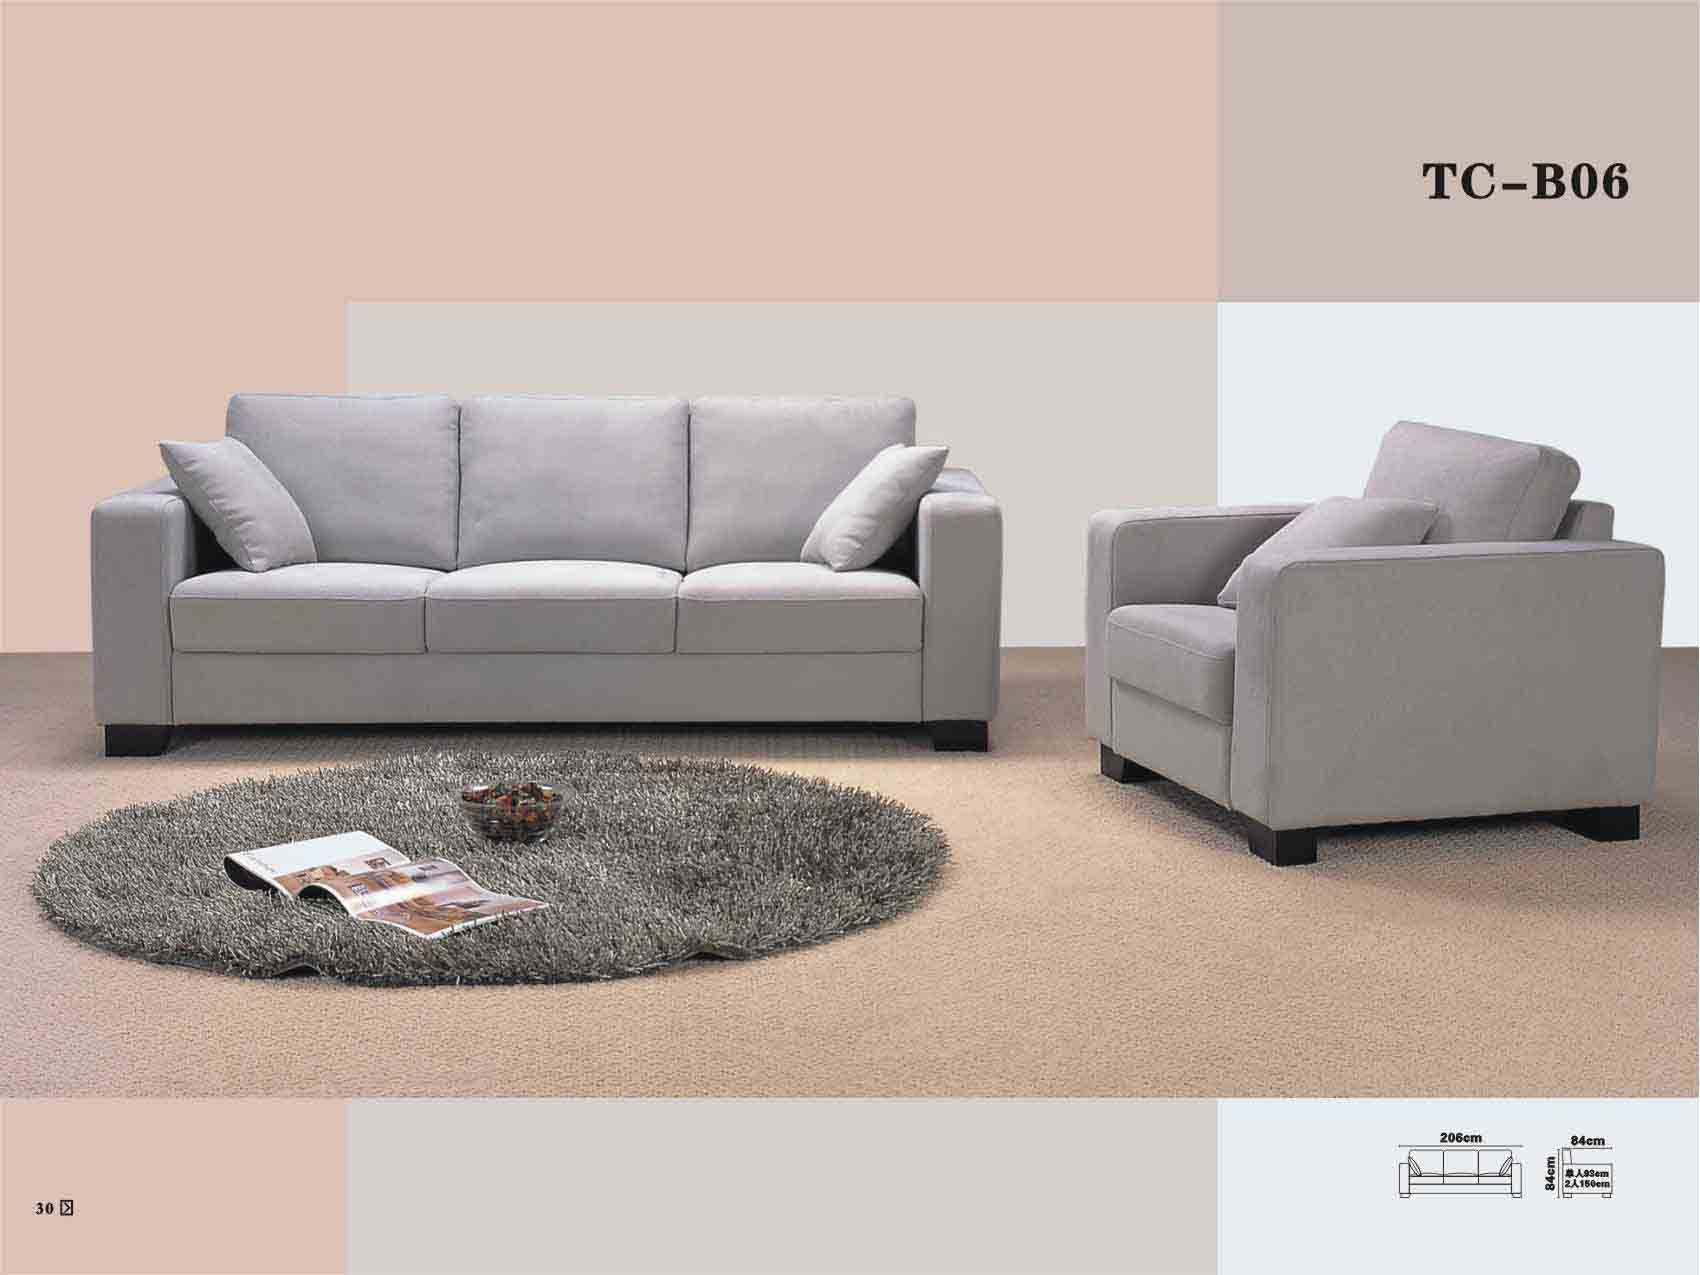 China contemporary modern sofa tc b06 china sofa for Contemporary couches